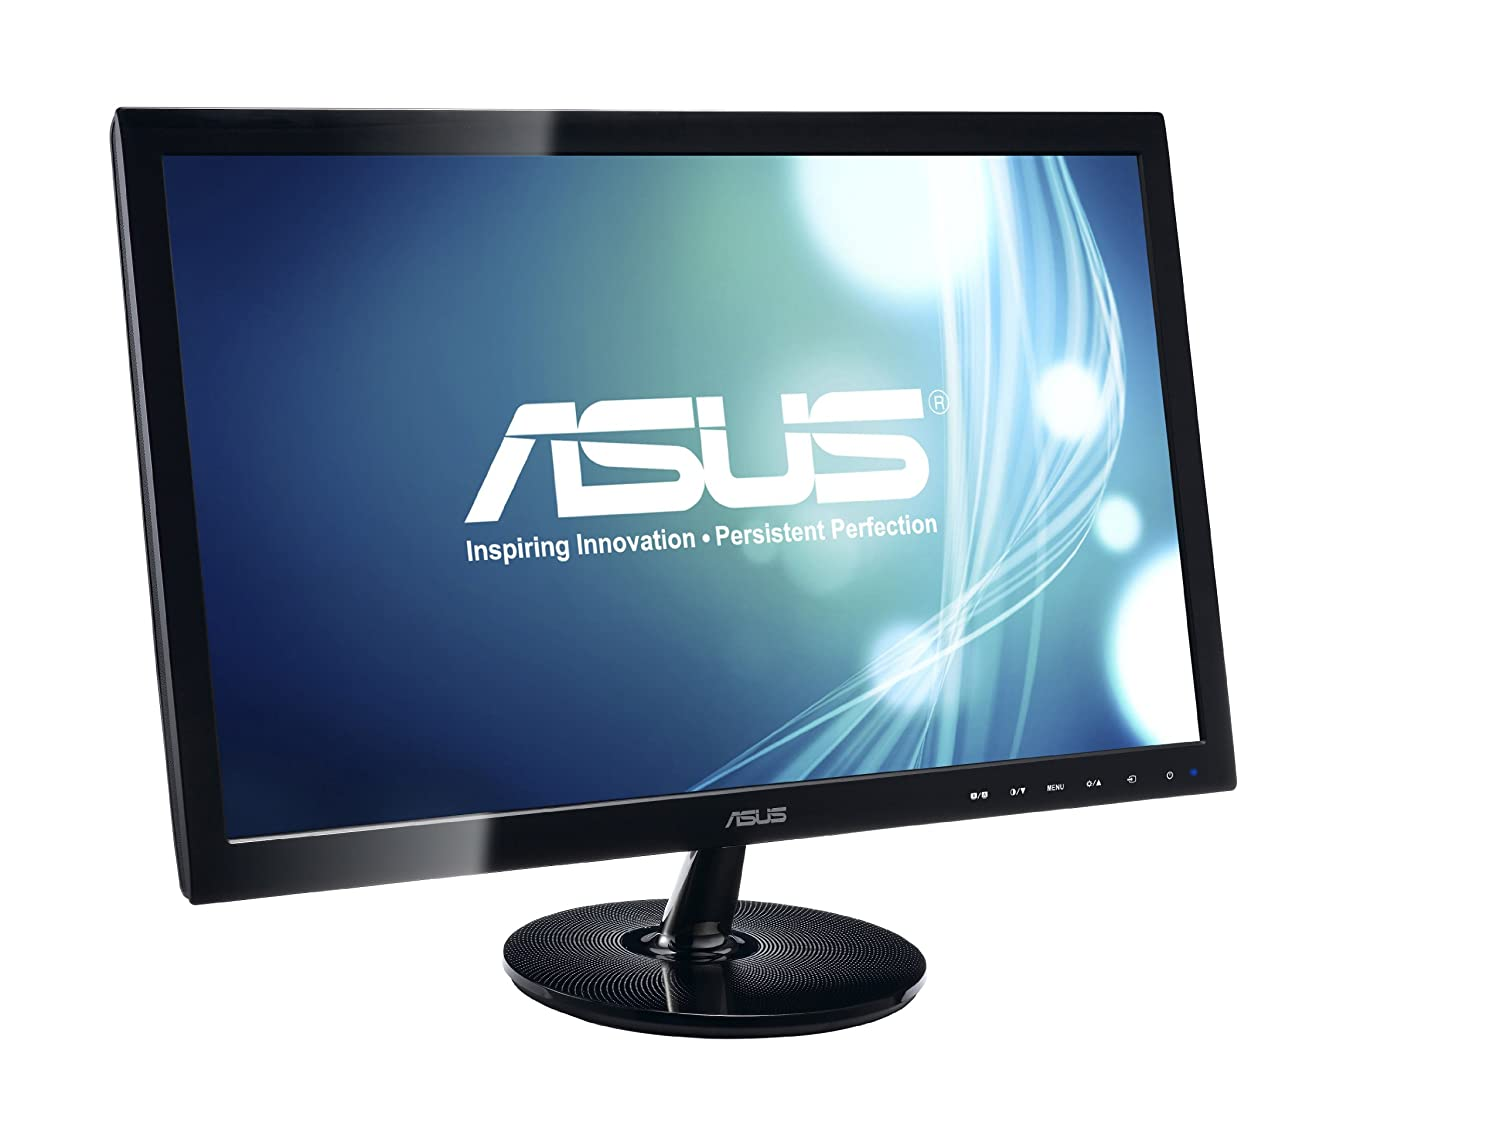 ASUS VS239H-P DRIVER FOR WINDOWS